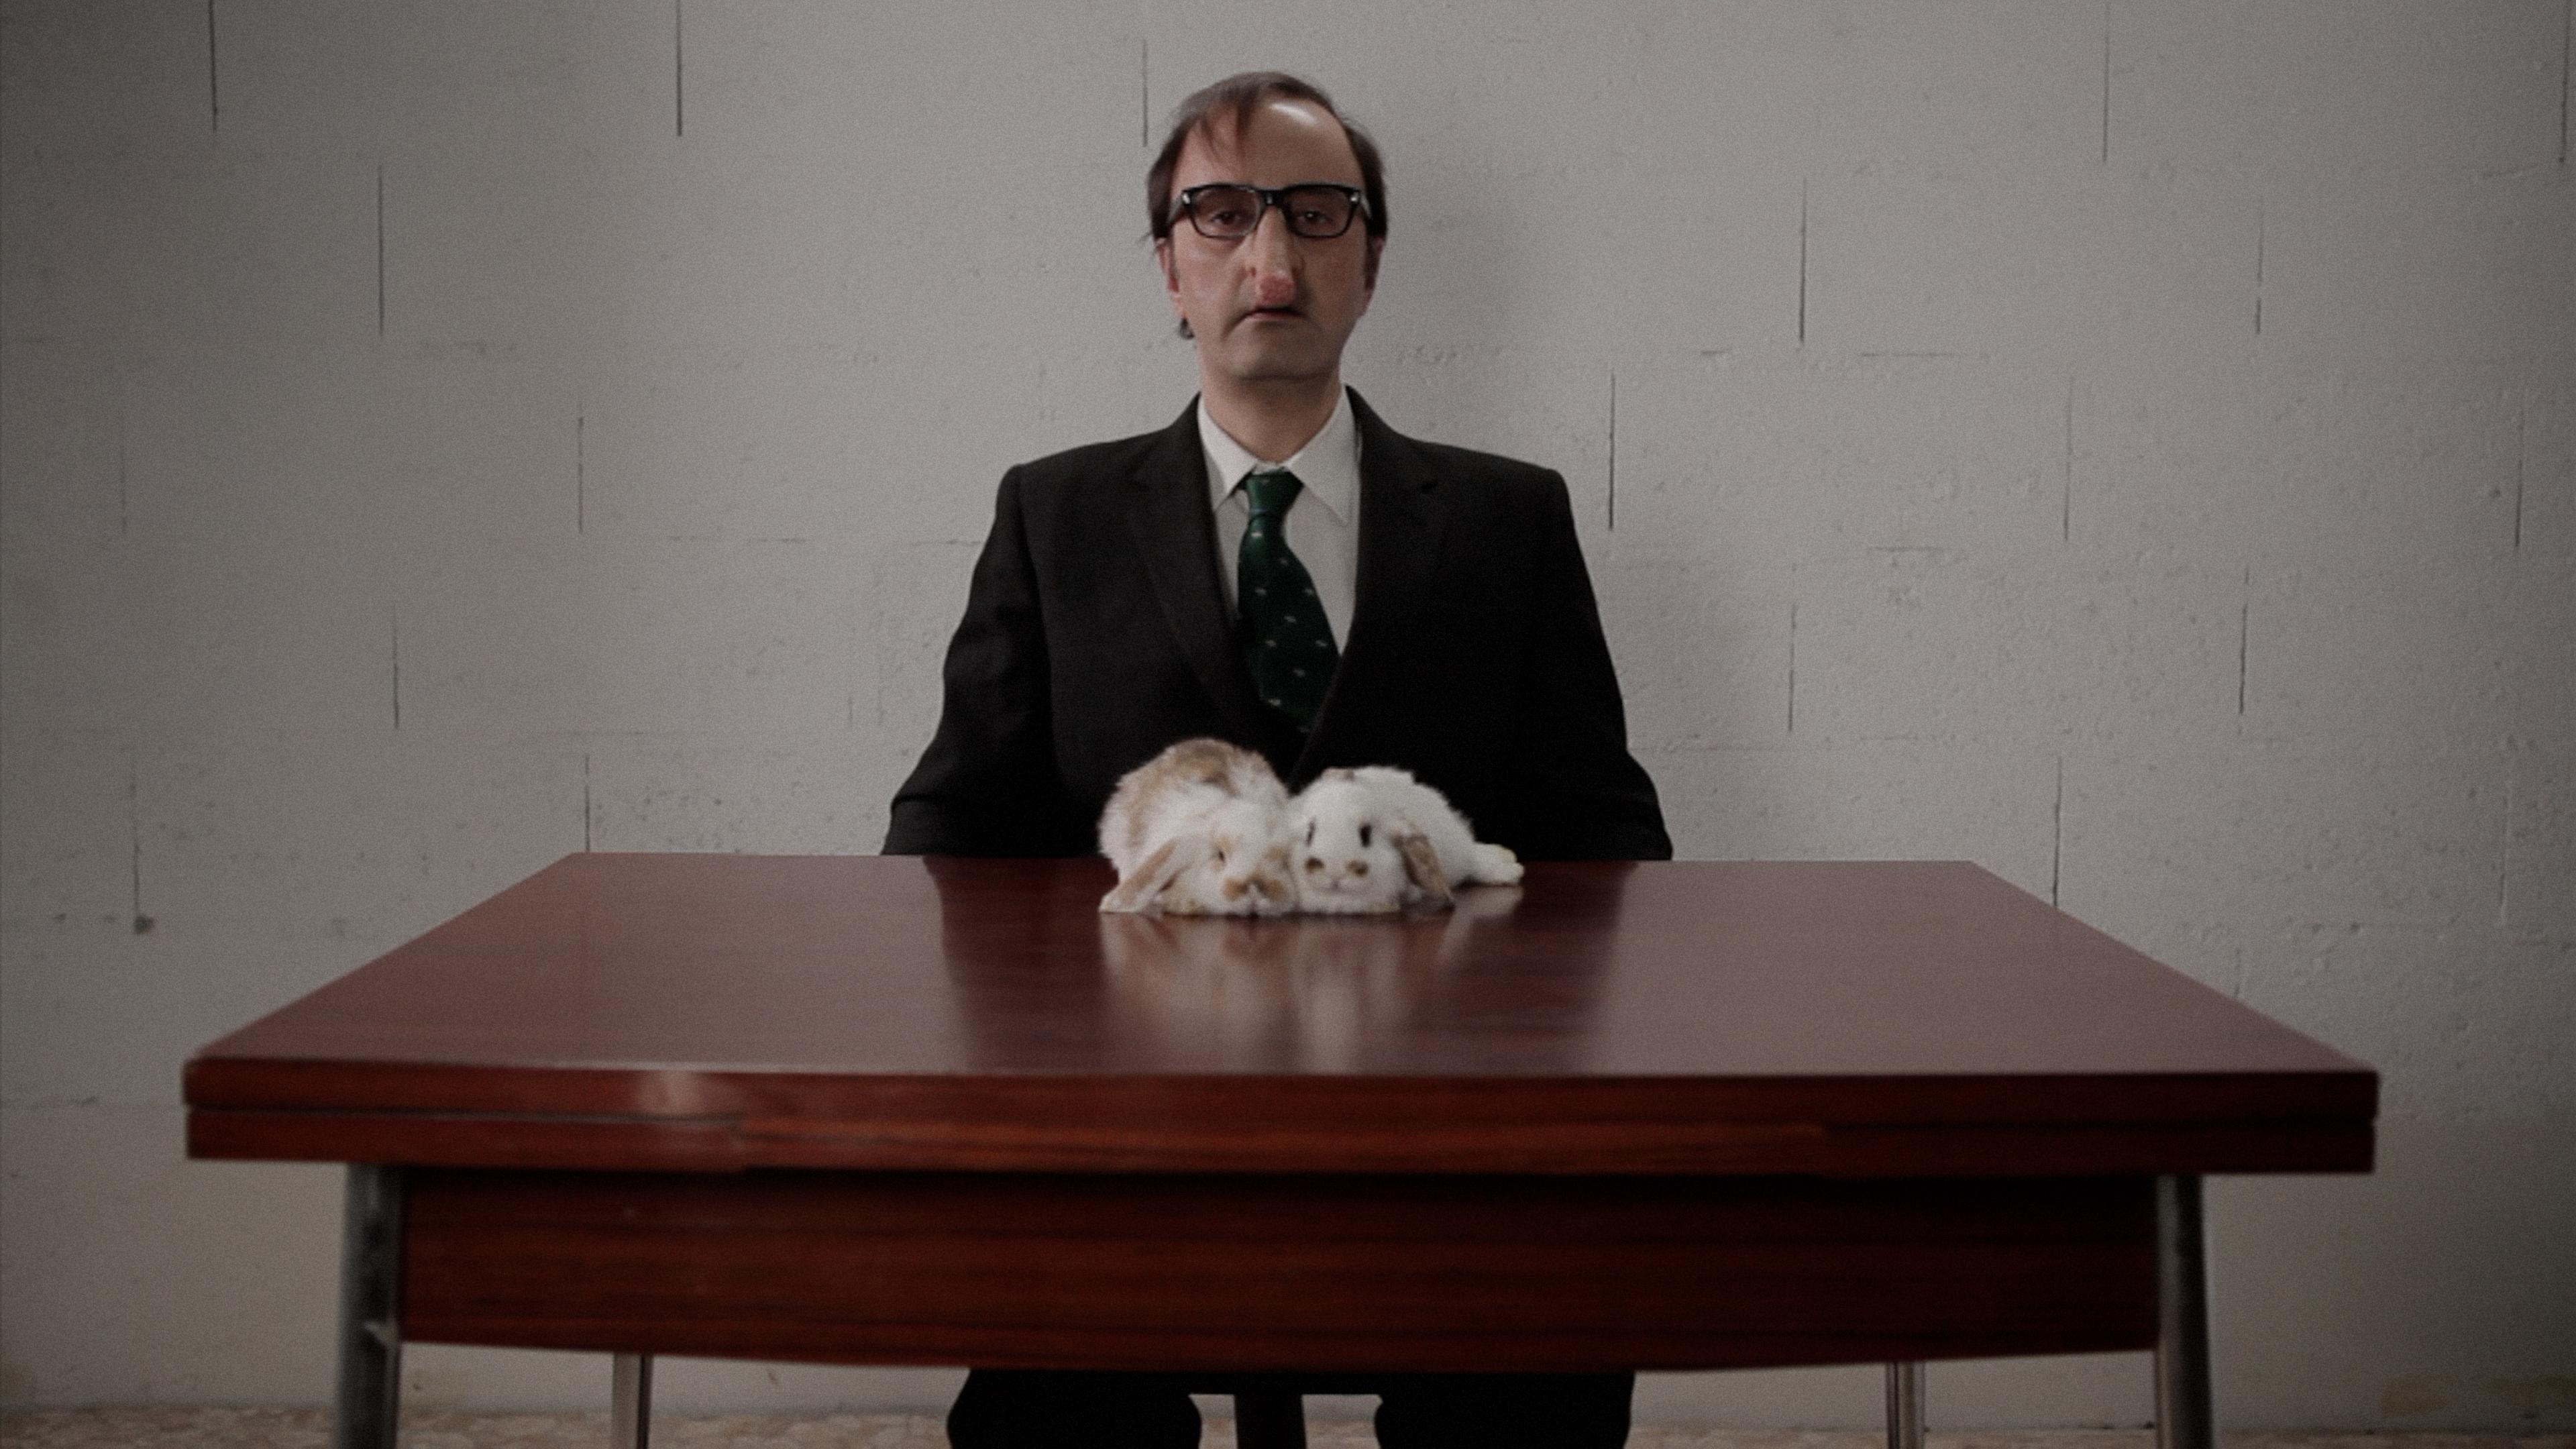 A balding man with thick-framed glasses and a strangely long nose looks directly at you. He sits at a table, upon which two white-and-brown rabbits are resting.